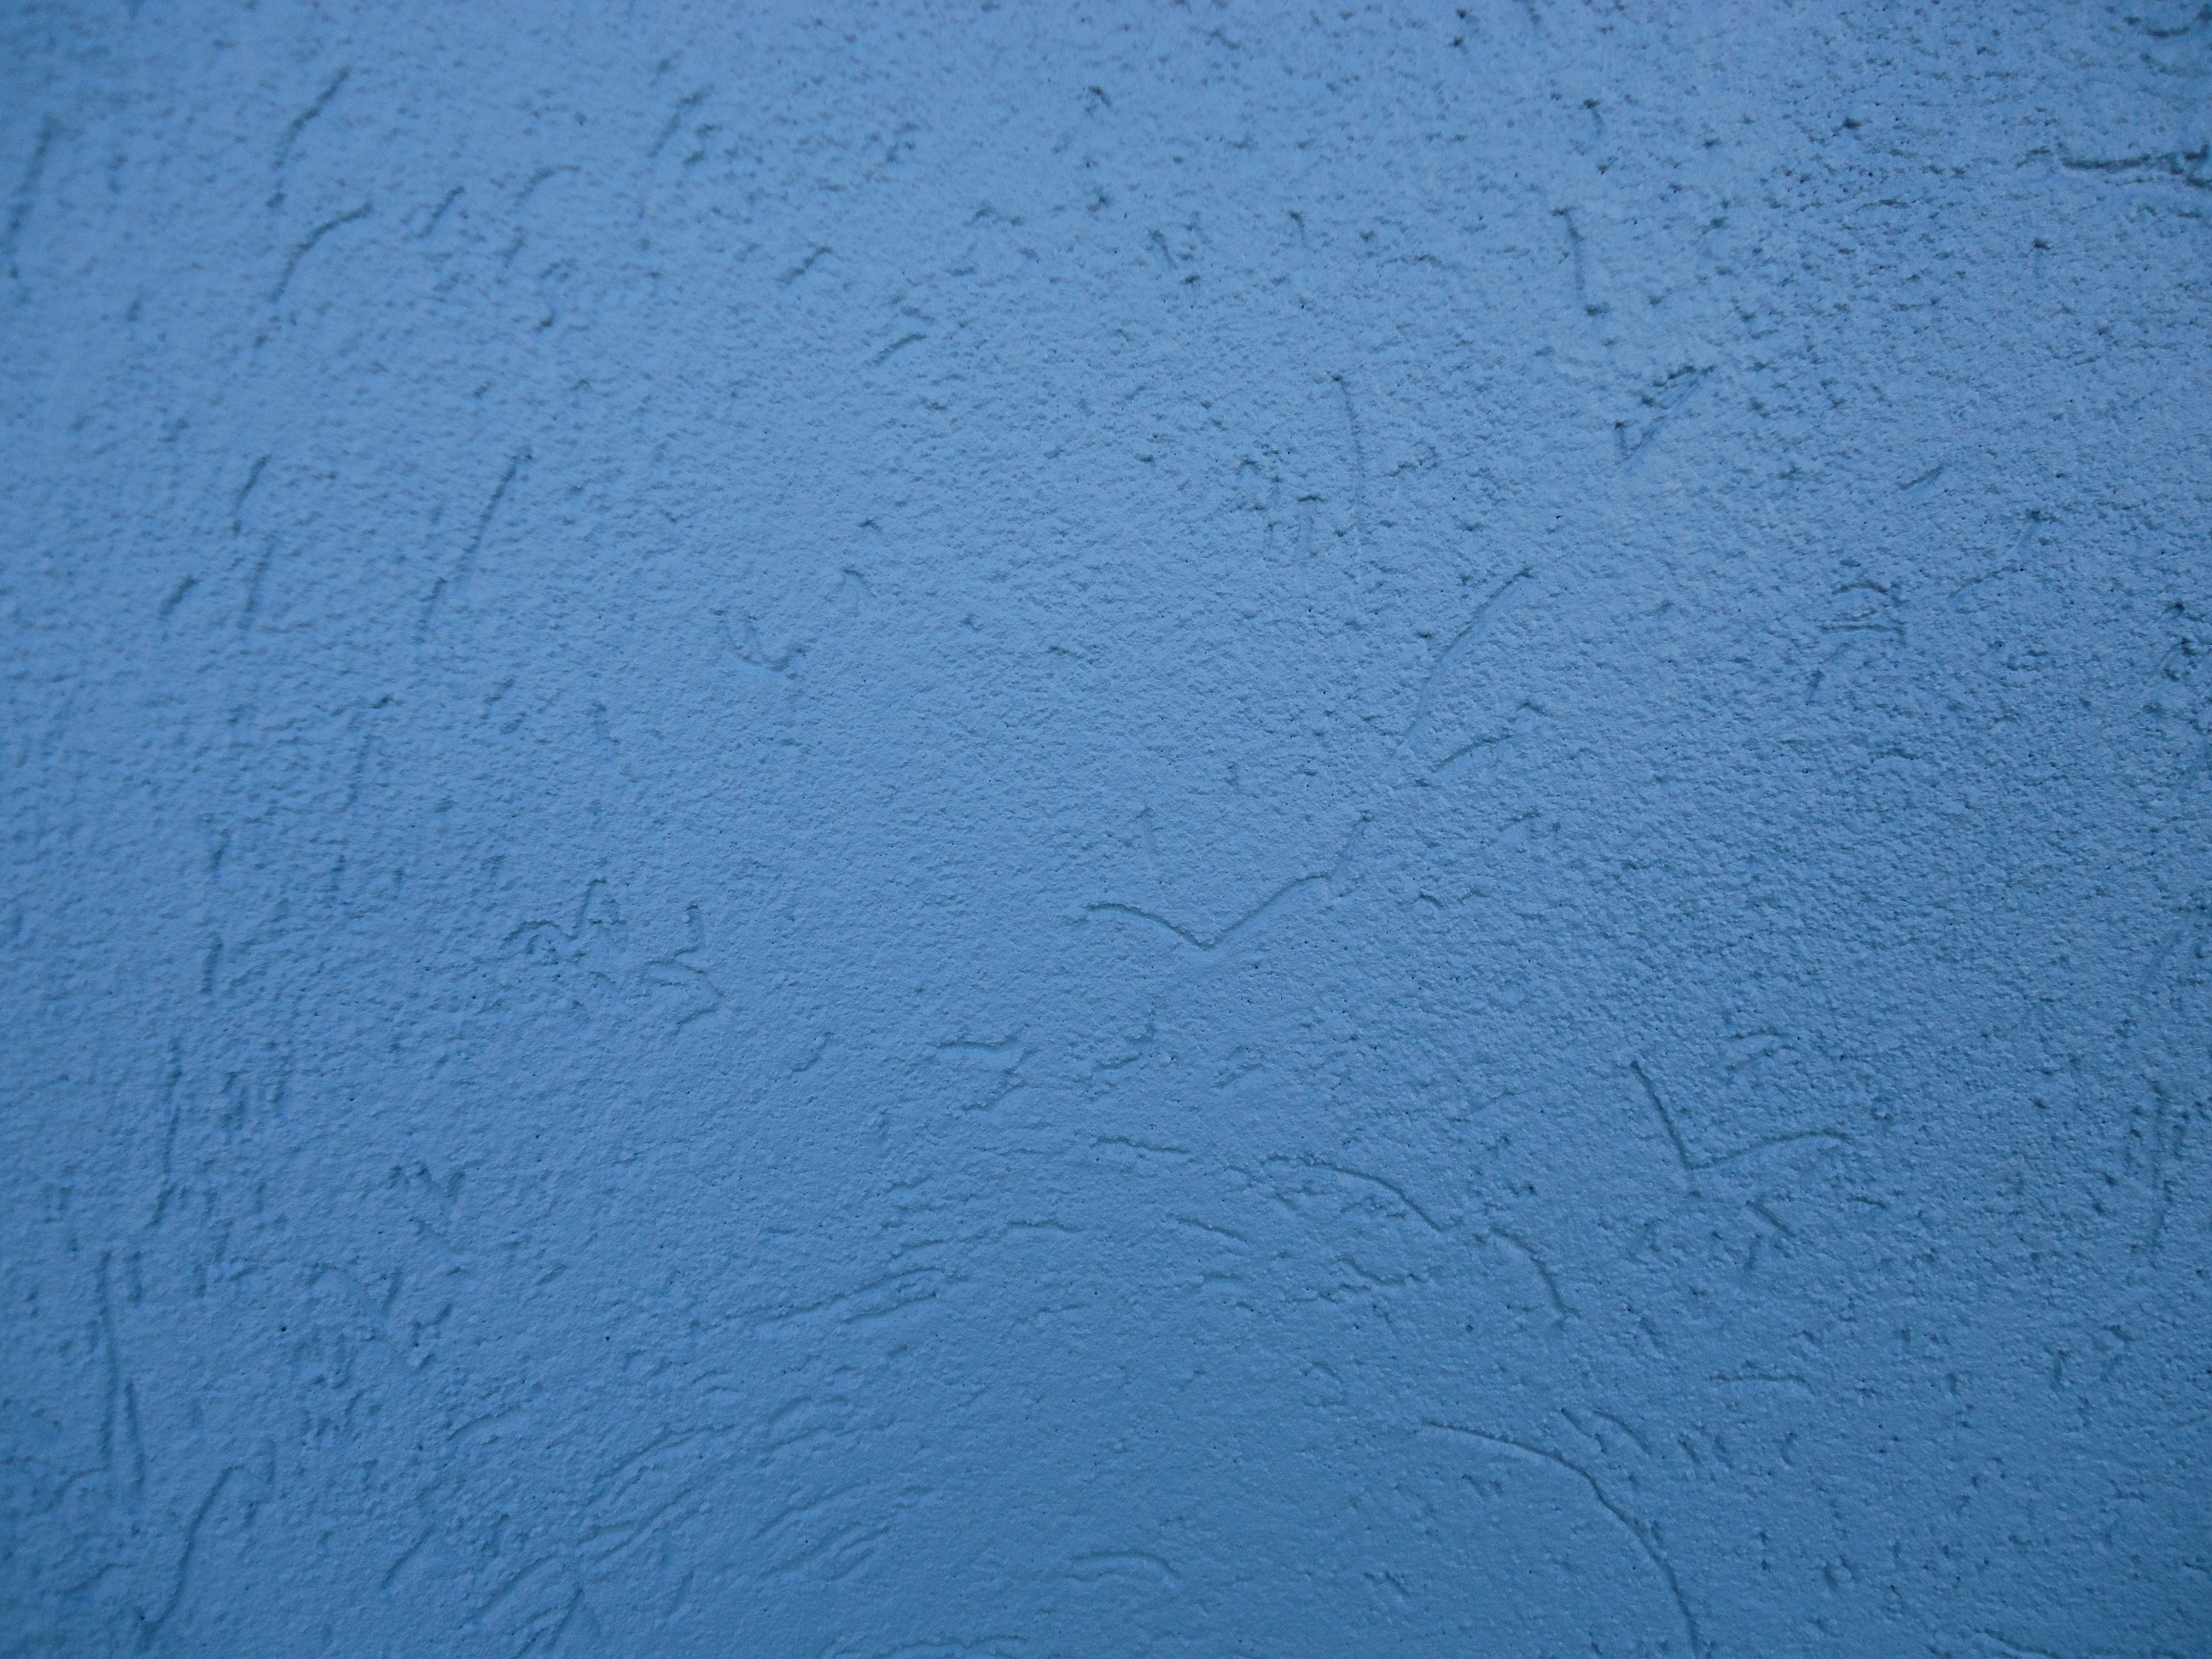 Blue Wall Texture Design : File surfaces wall textured painted blue g wikimedia